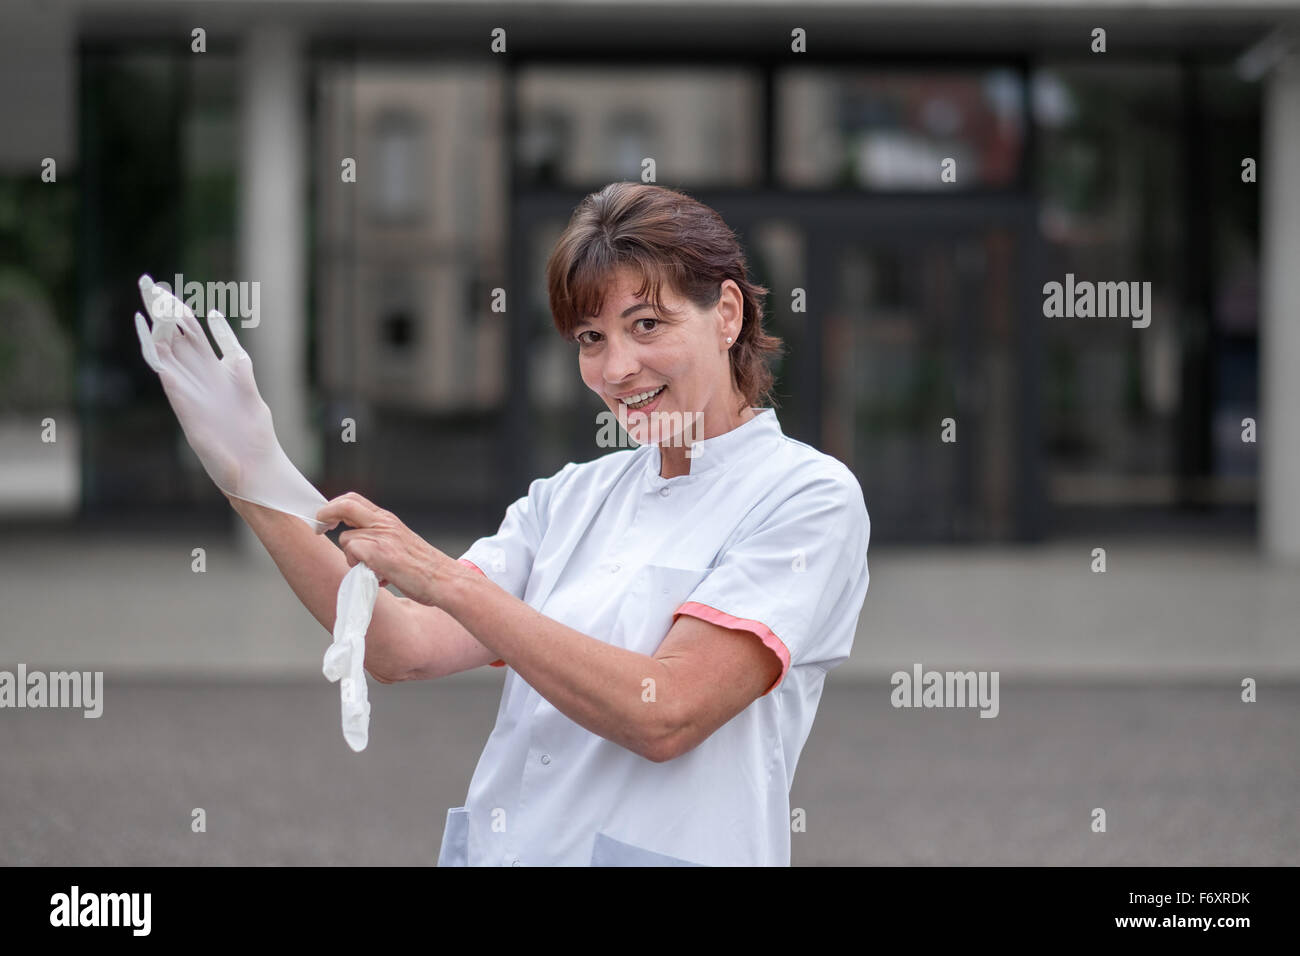 Female doctor or nurse standing outdoors in front of a hospital putting on latex gloves for protection or sterility - Stock Image